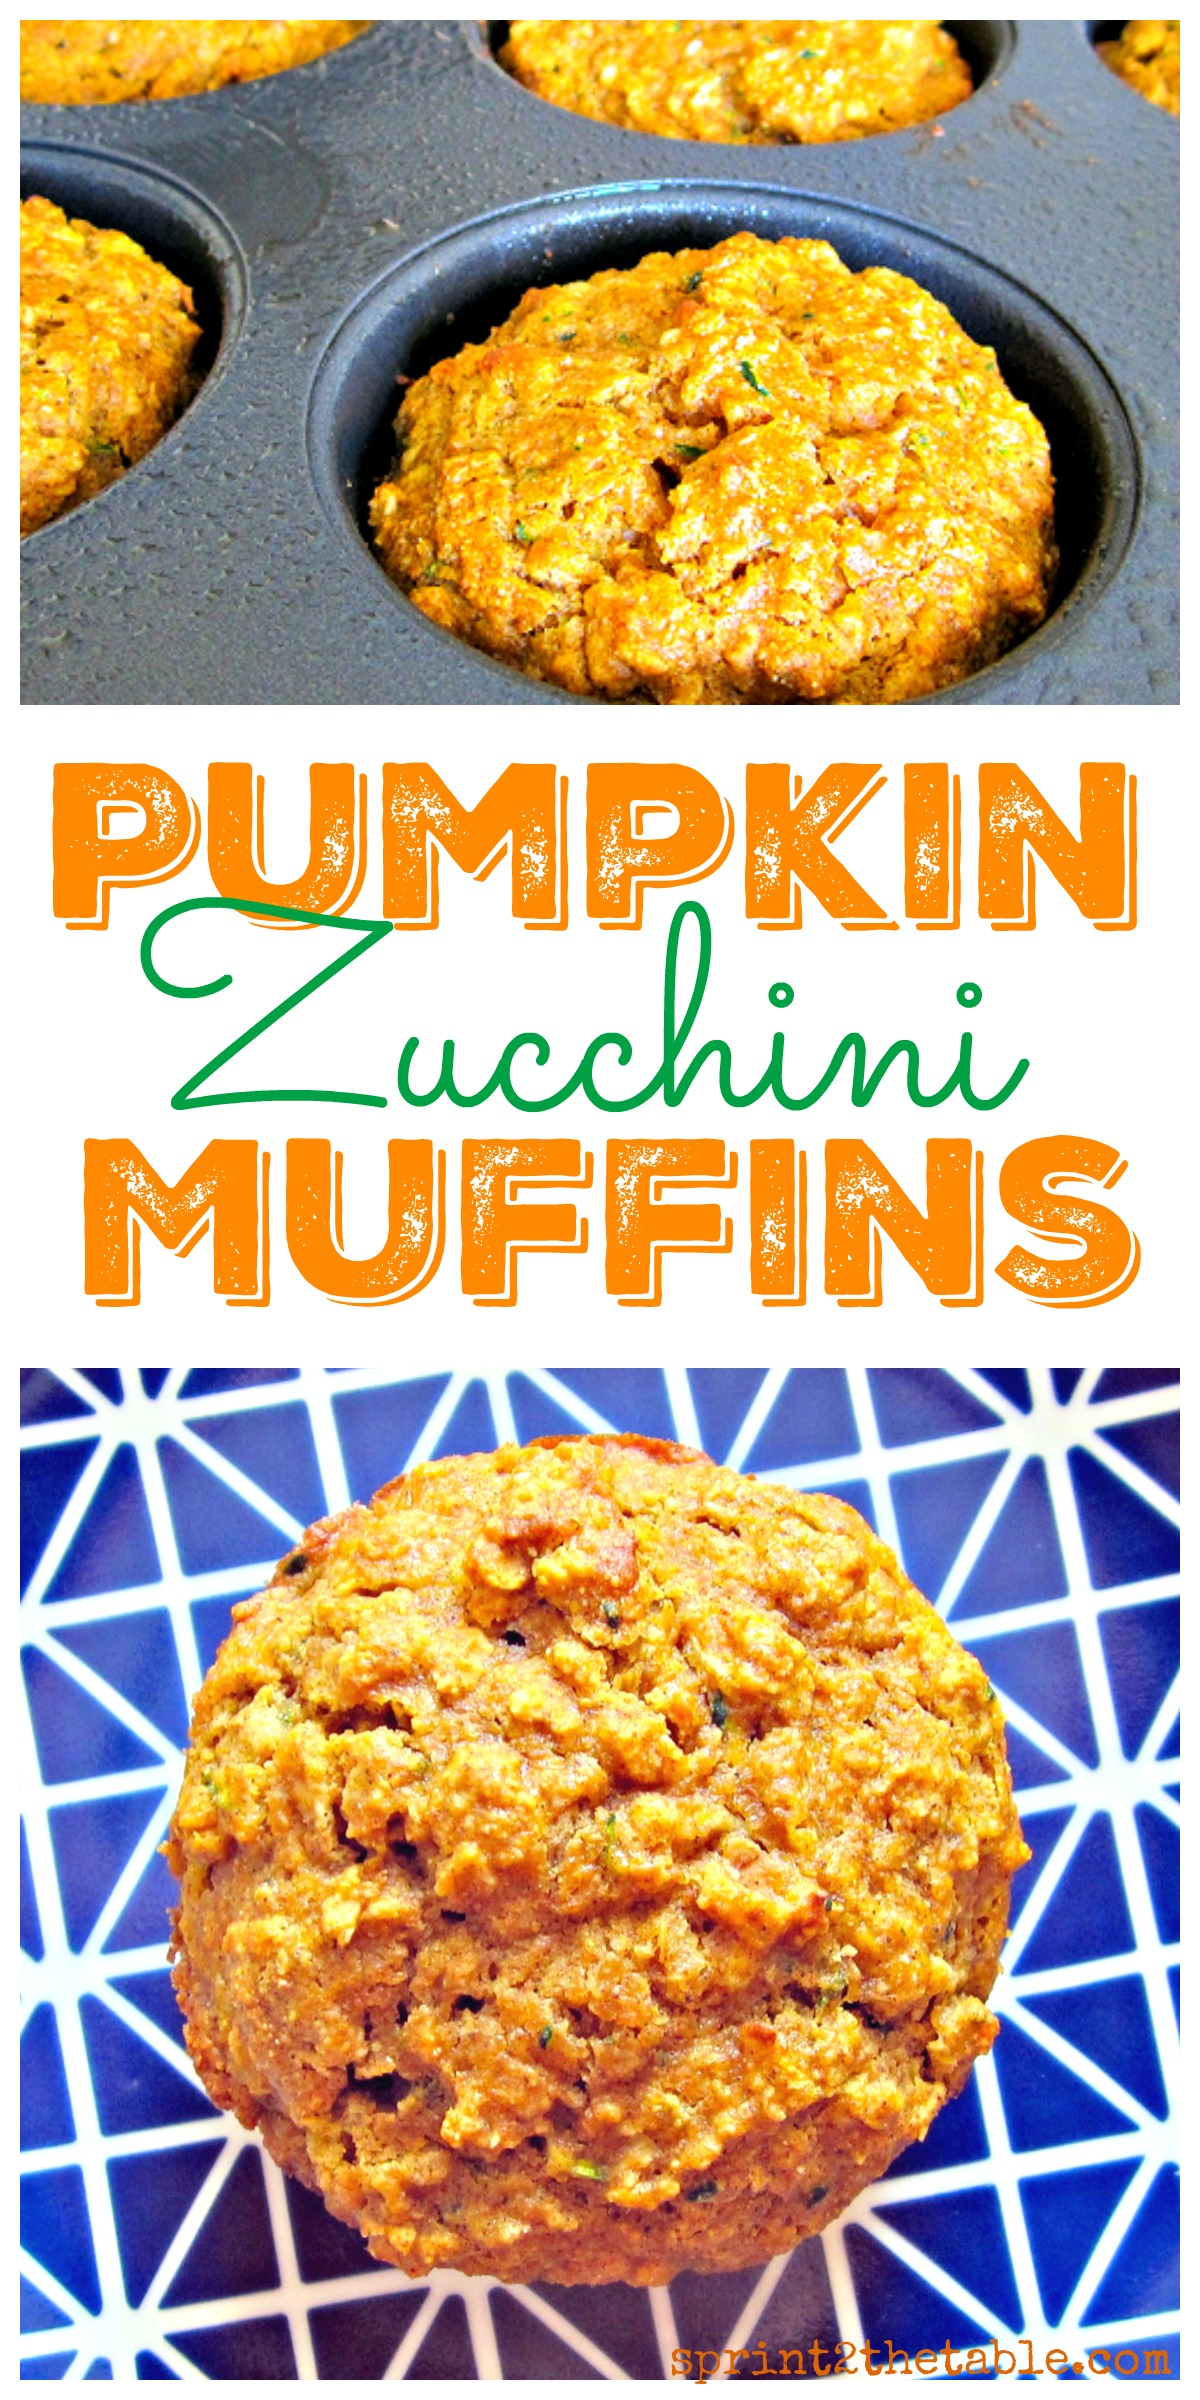 pumpkin-zucchini-muffins-healthy-fall-breakfast-that-wont-lead-to-a-sugar-crash